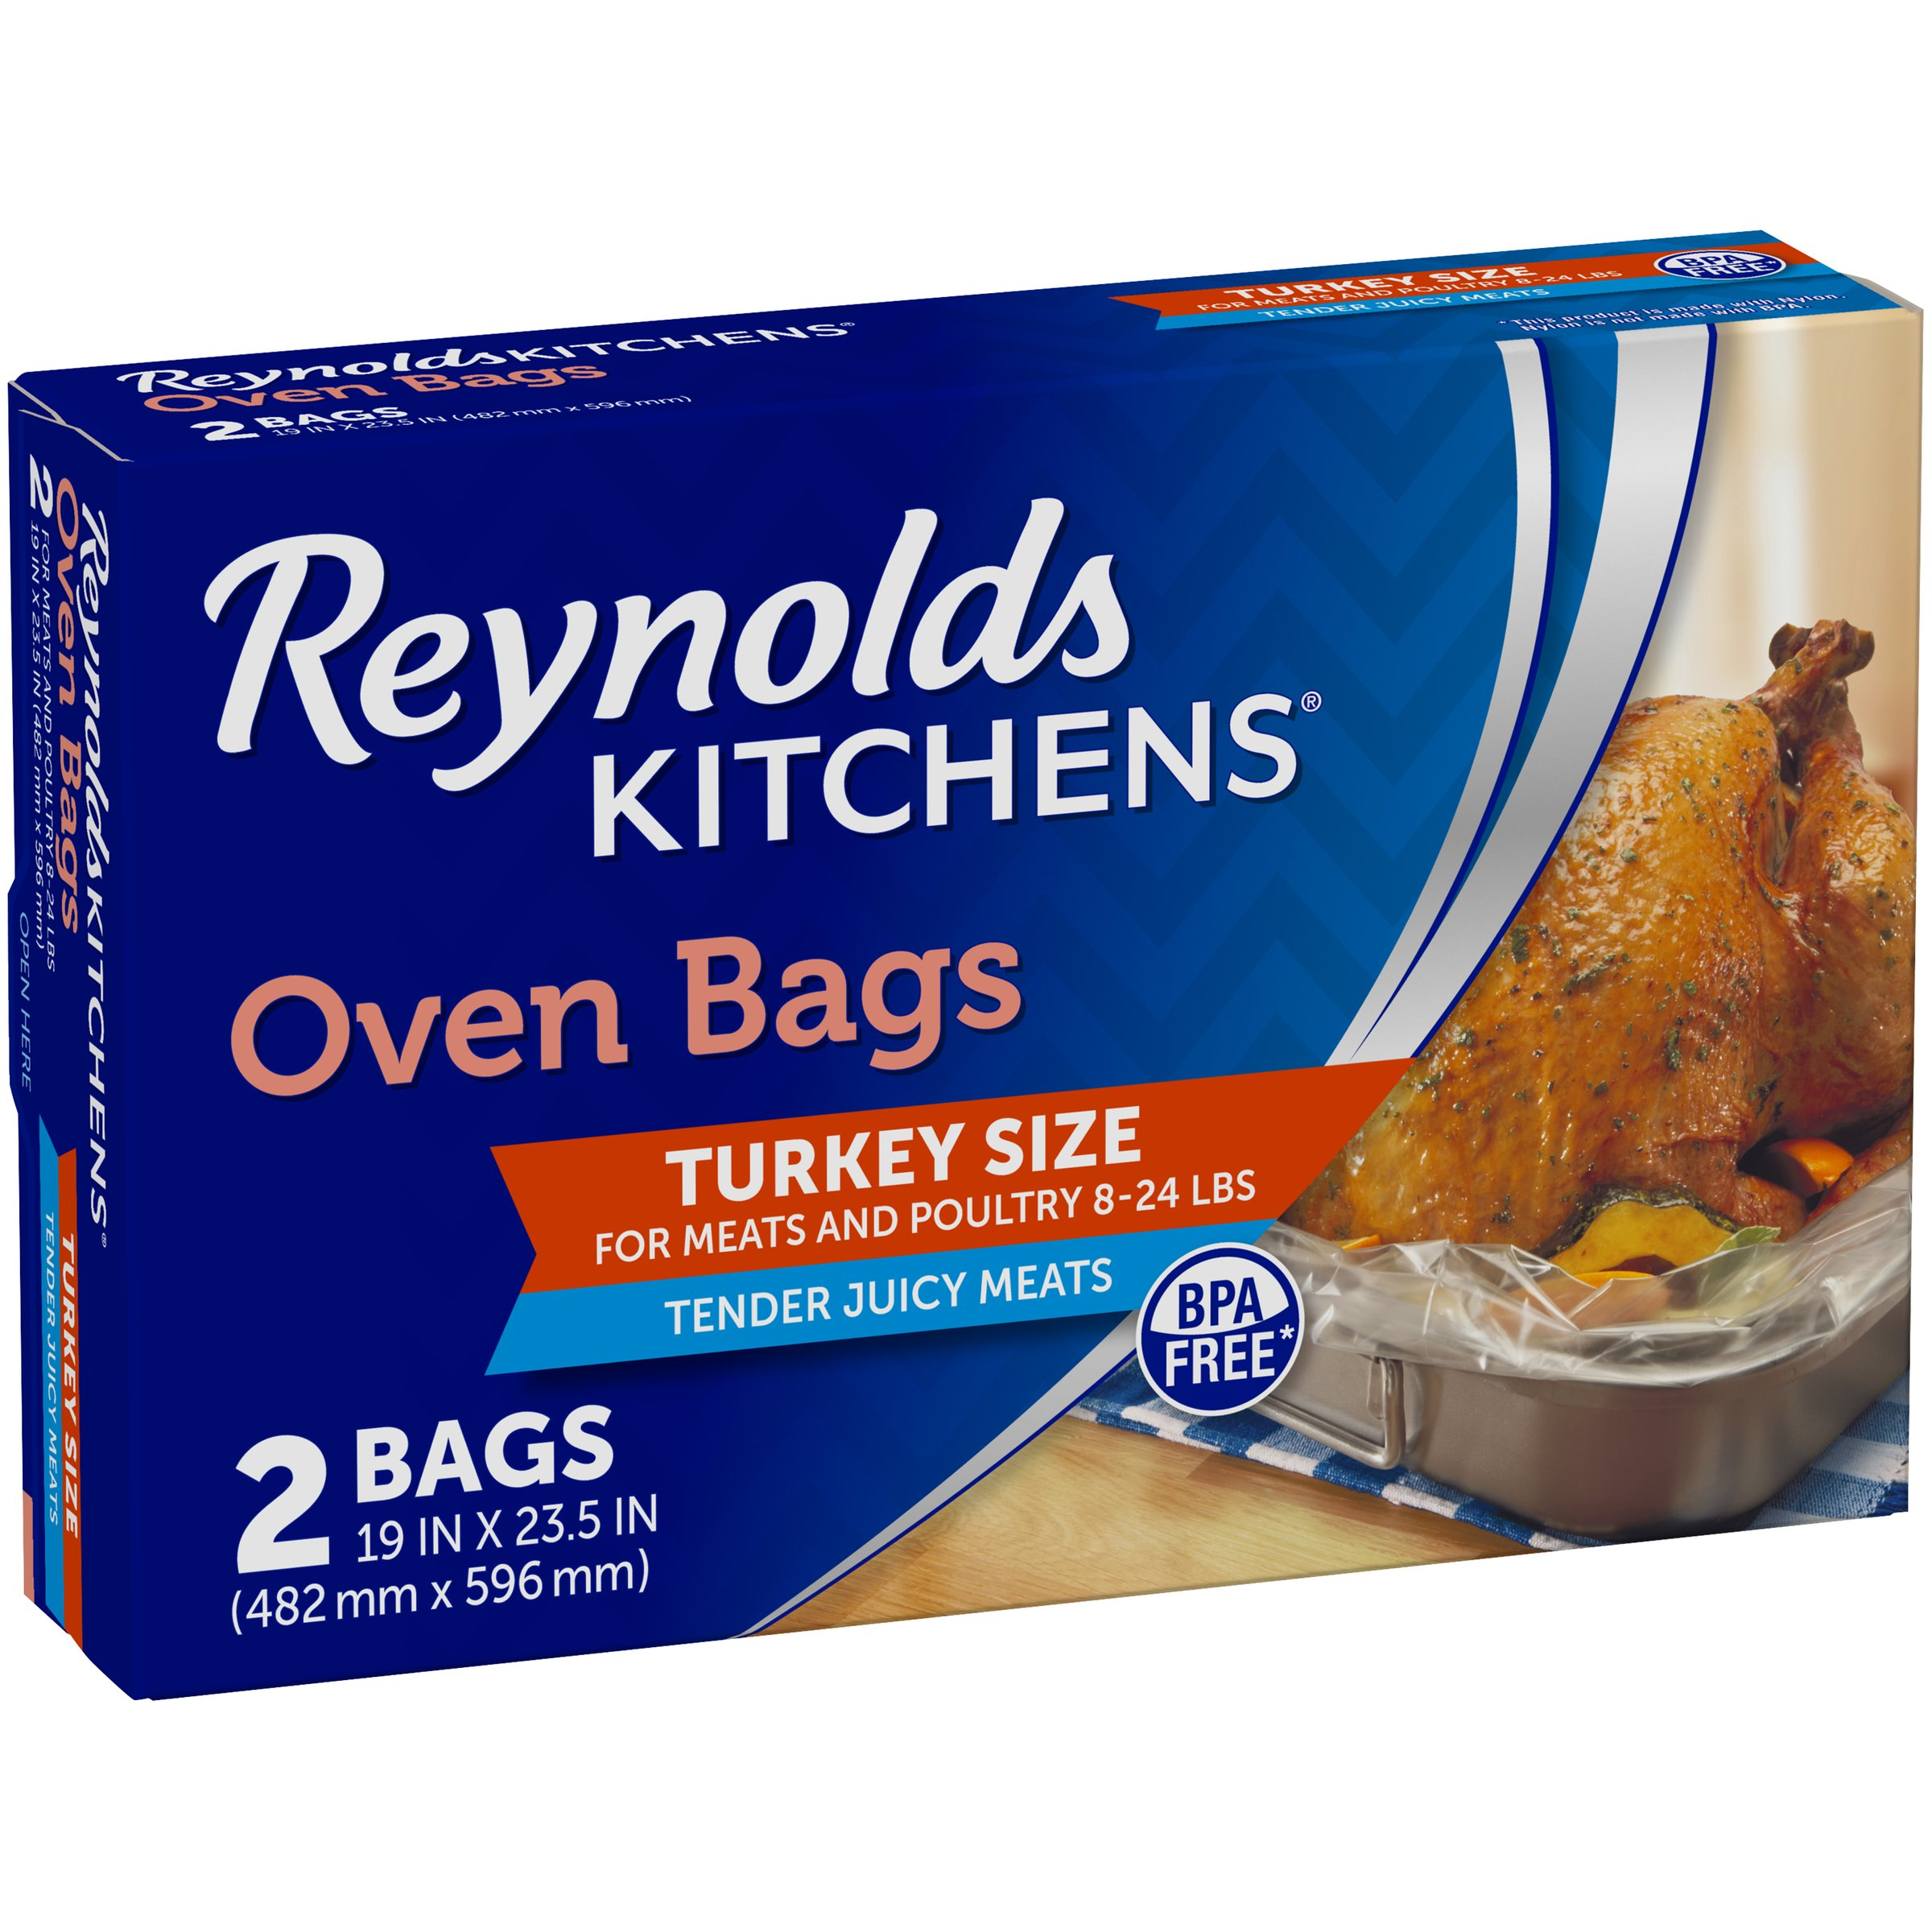 Reynolds Turkey Size Oven Bags Shop Storage Bags At Heb